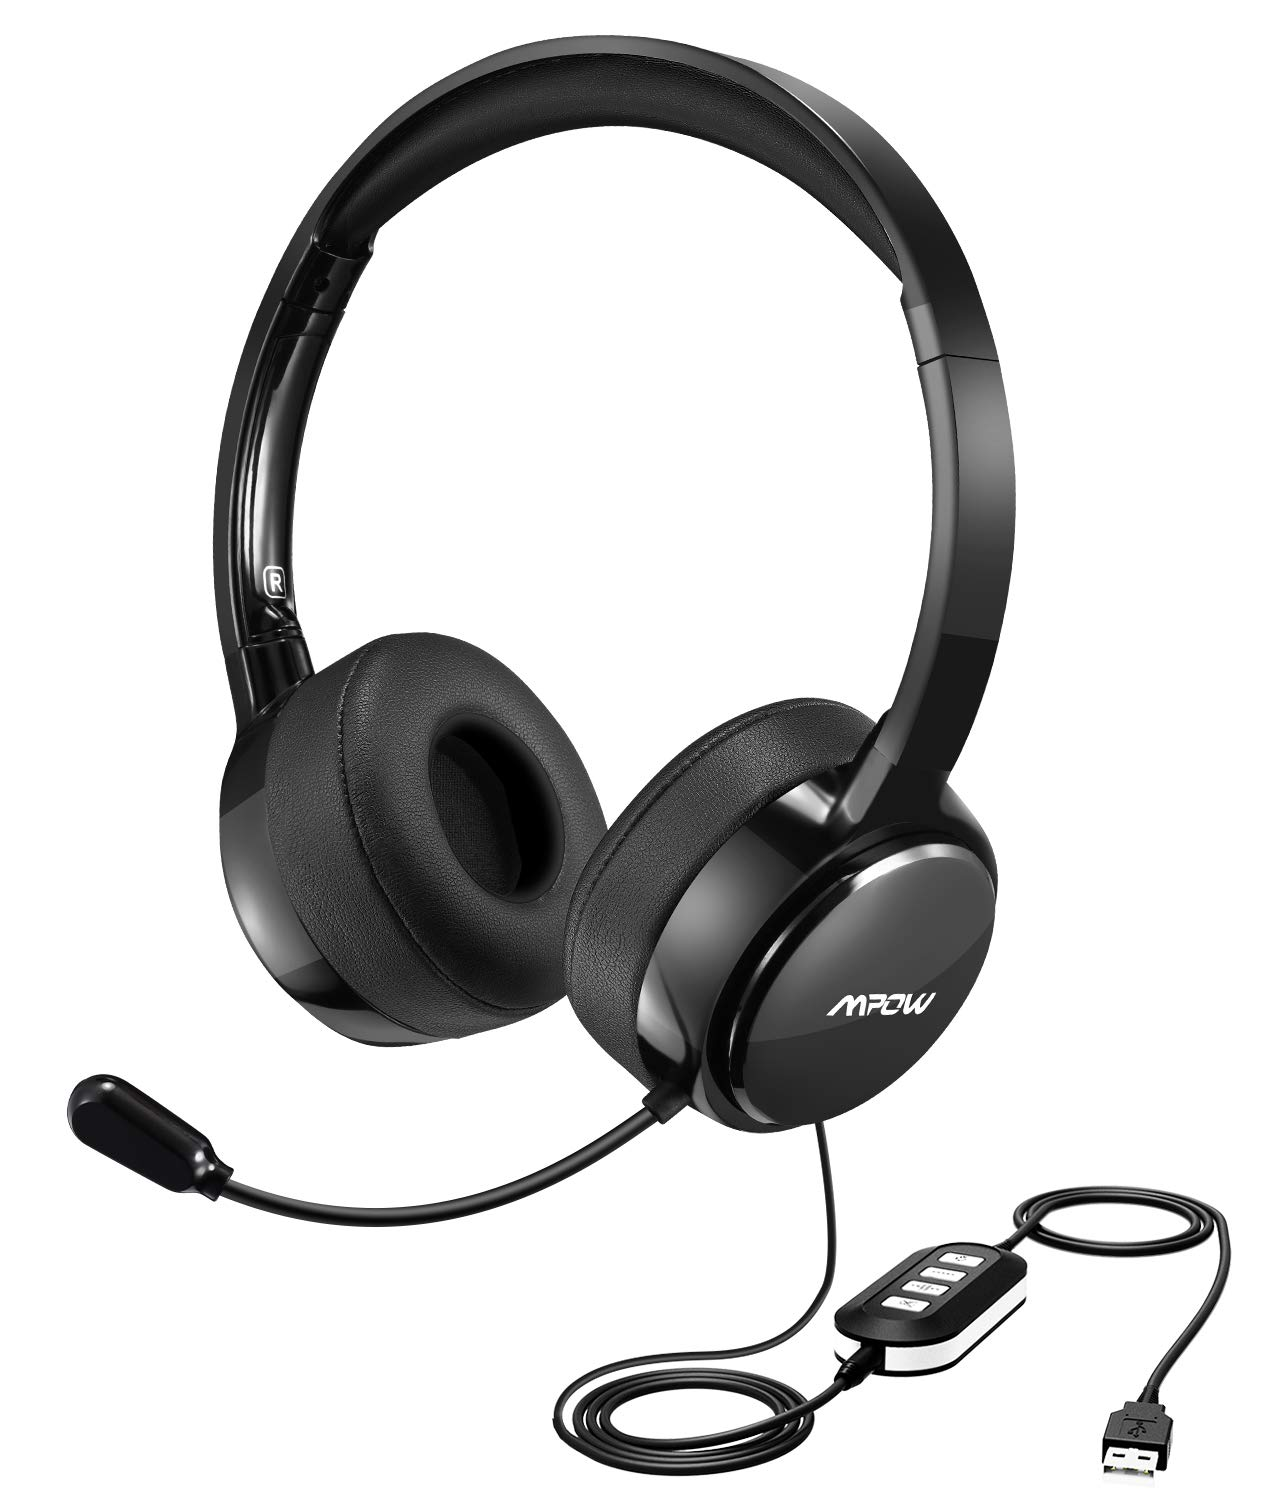 Mpow Upgraded USB Headset with 3.5mm Jack, Lightweight Computer Headset with Noise Cancelling Microphone, Comfy Earmuffs, Wired Headphones for PC, Skype, Phone